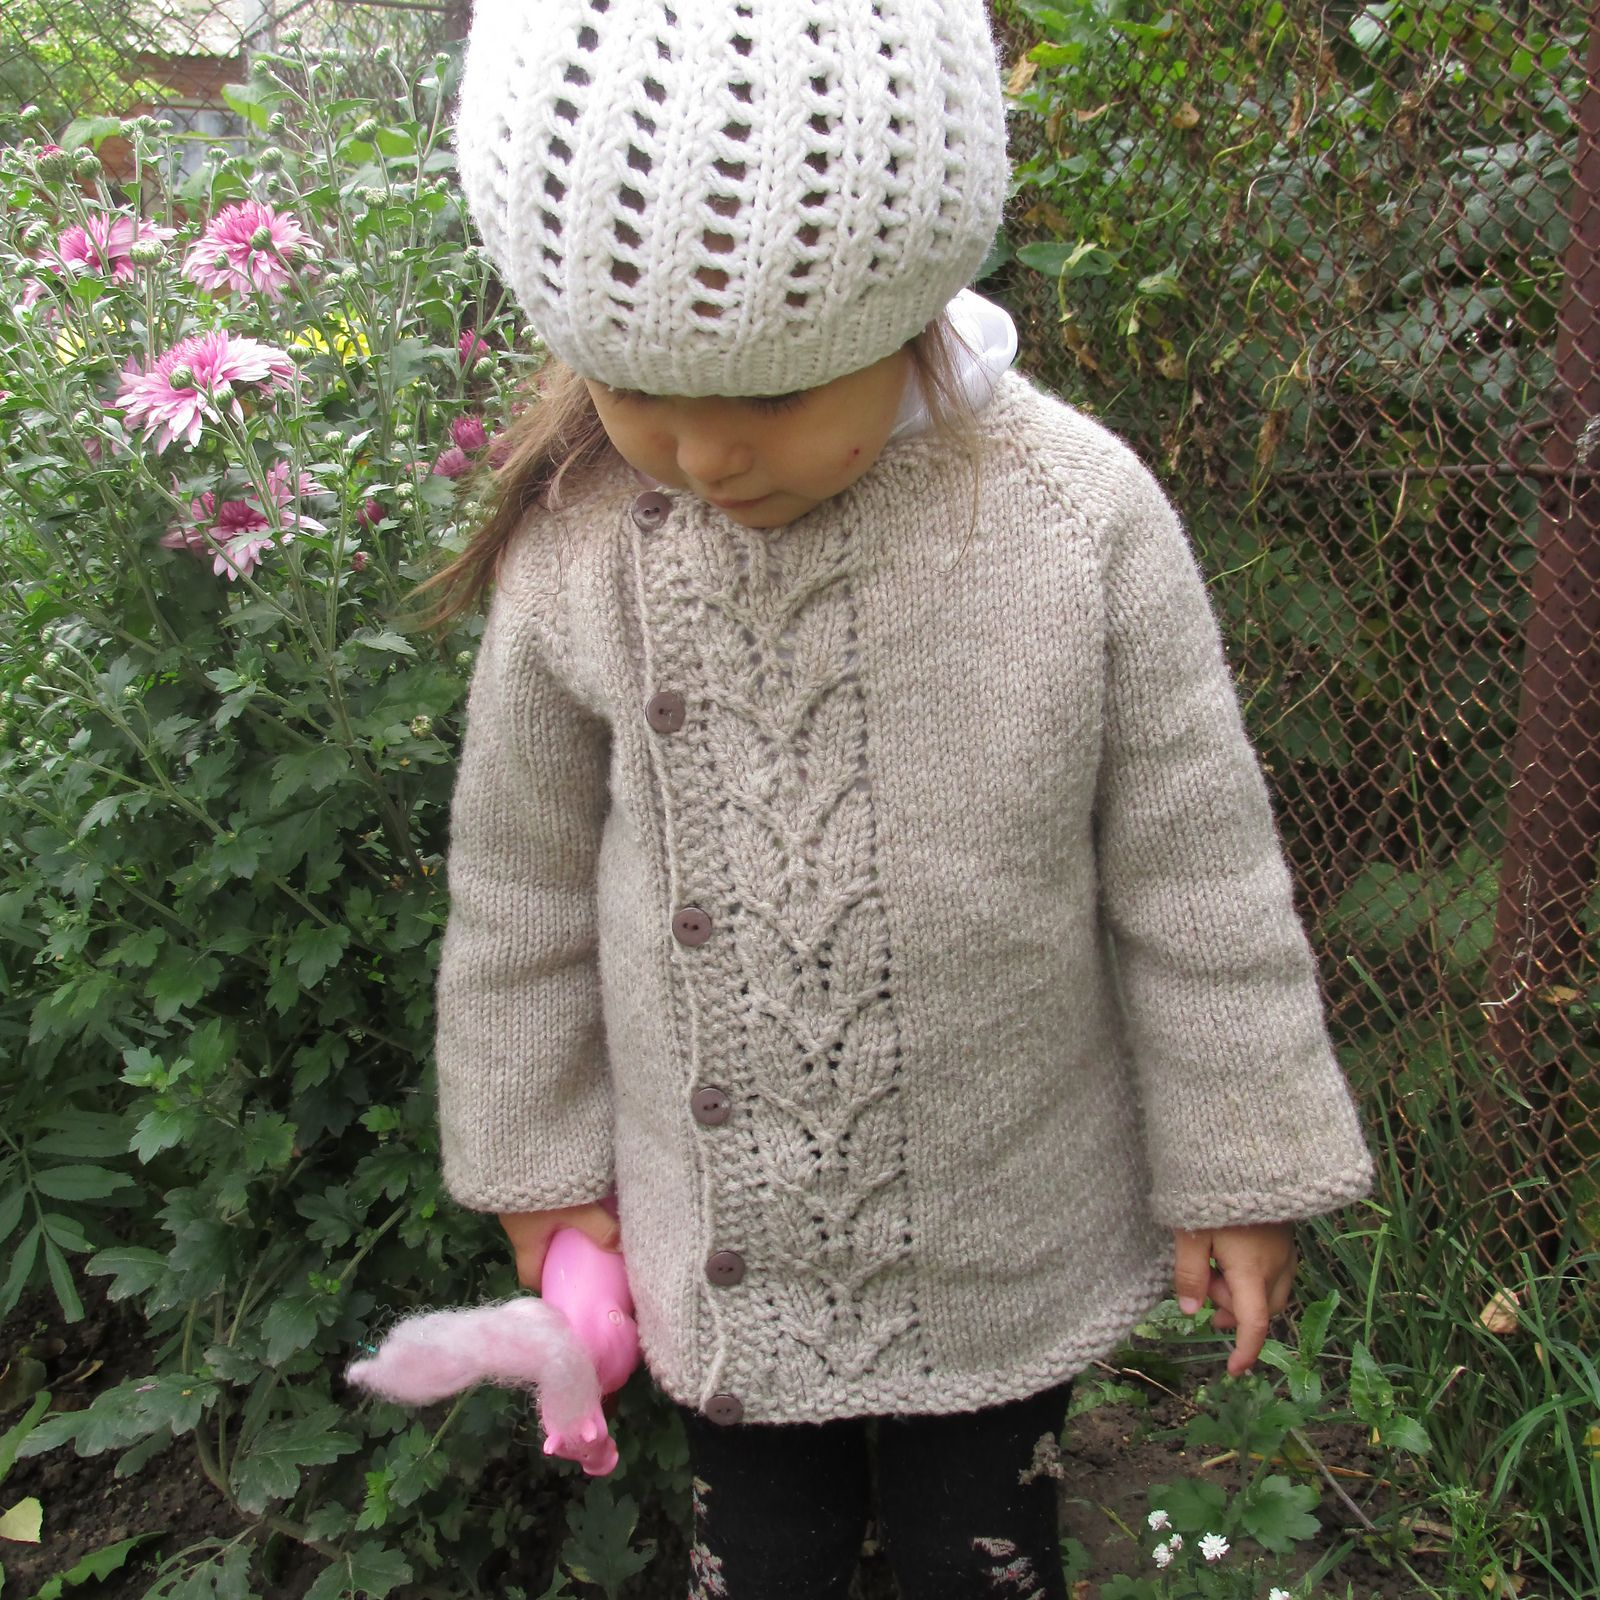 dc0361937 Ravelry  Leaf Love Baby Sweater by Taiga Hilliard Designs